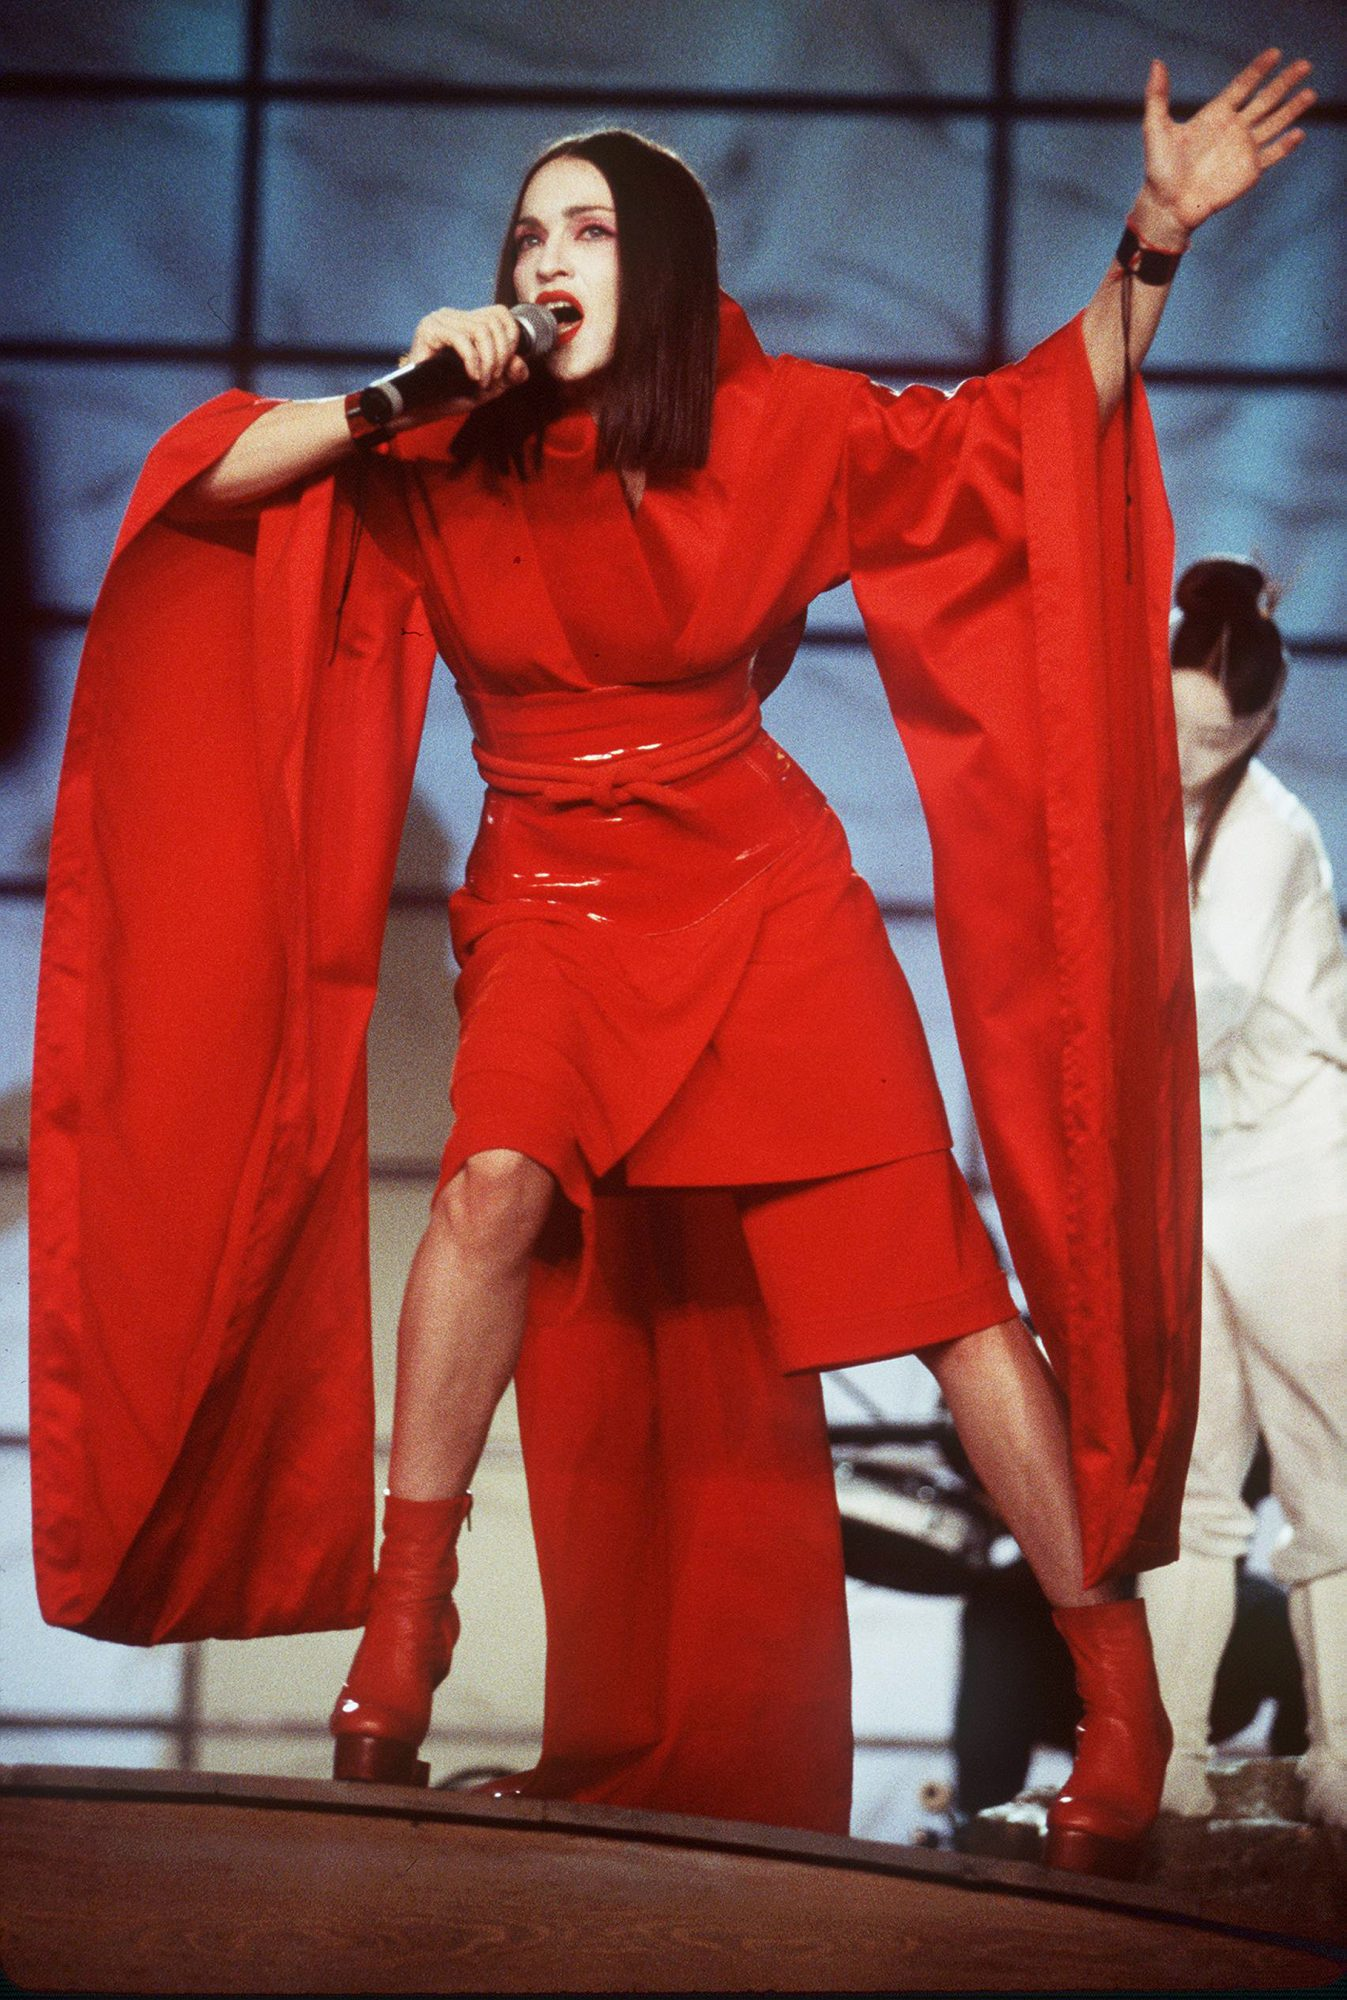 1999: At the Grammys in red kimono MadonnaCredit: Getty Images